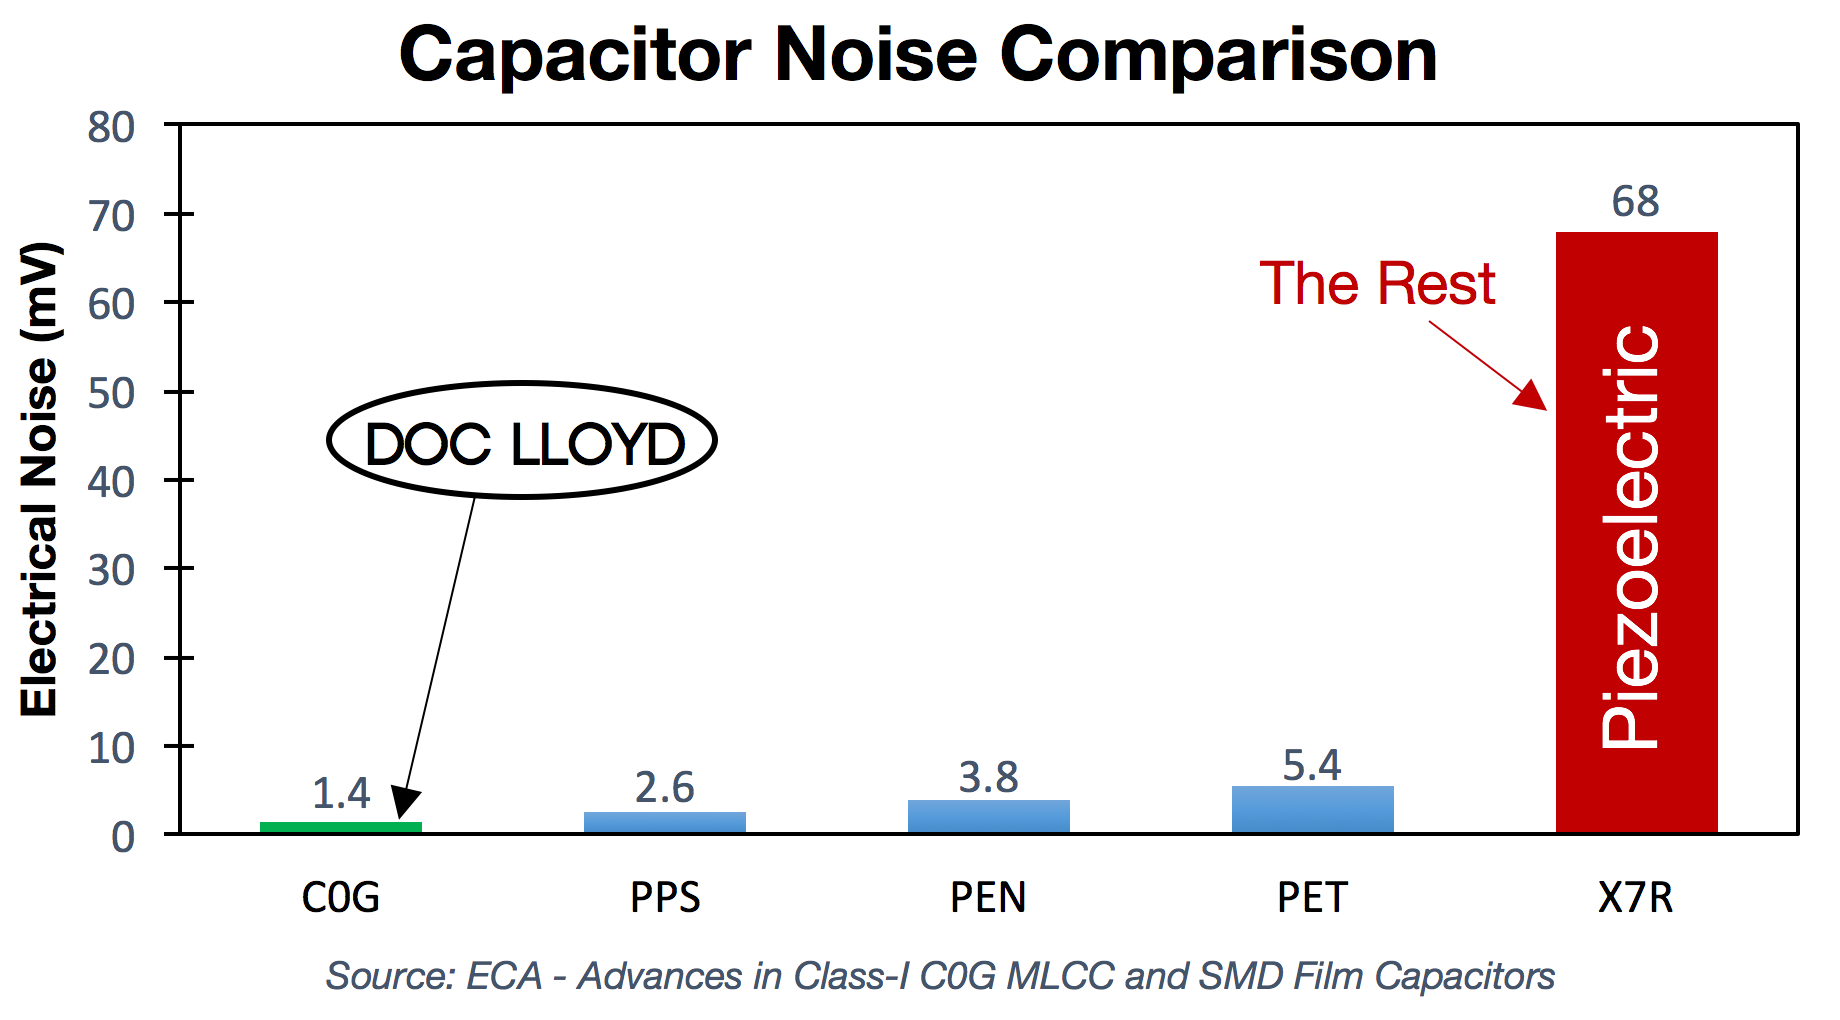 Capacitor Noise Comparison